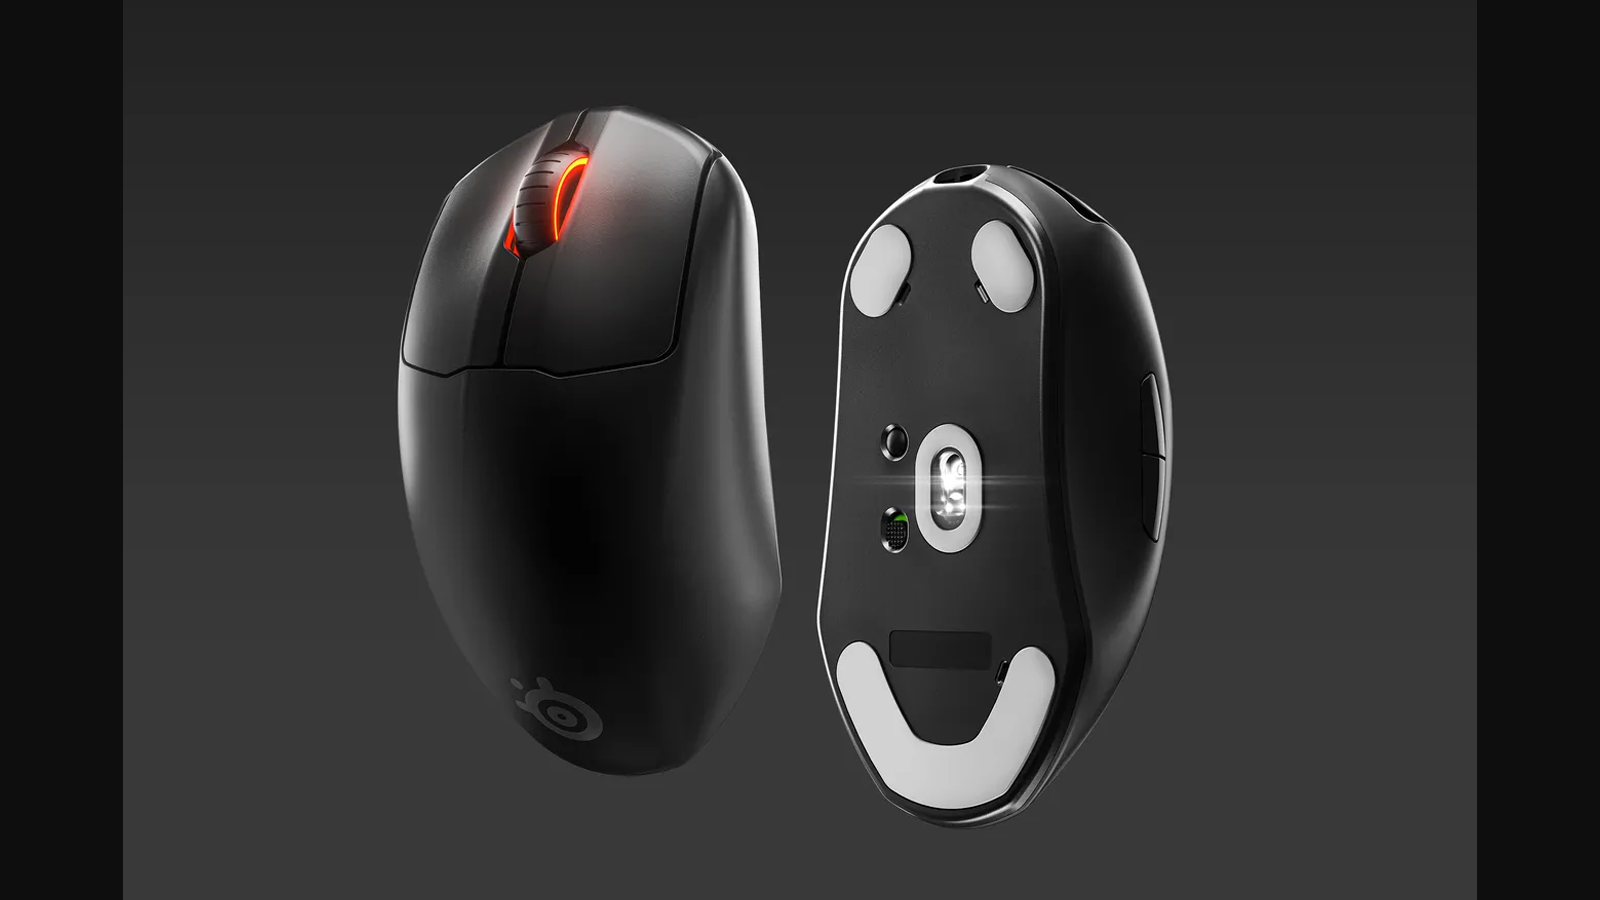 The SteelSeries Prime gaming mouse